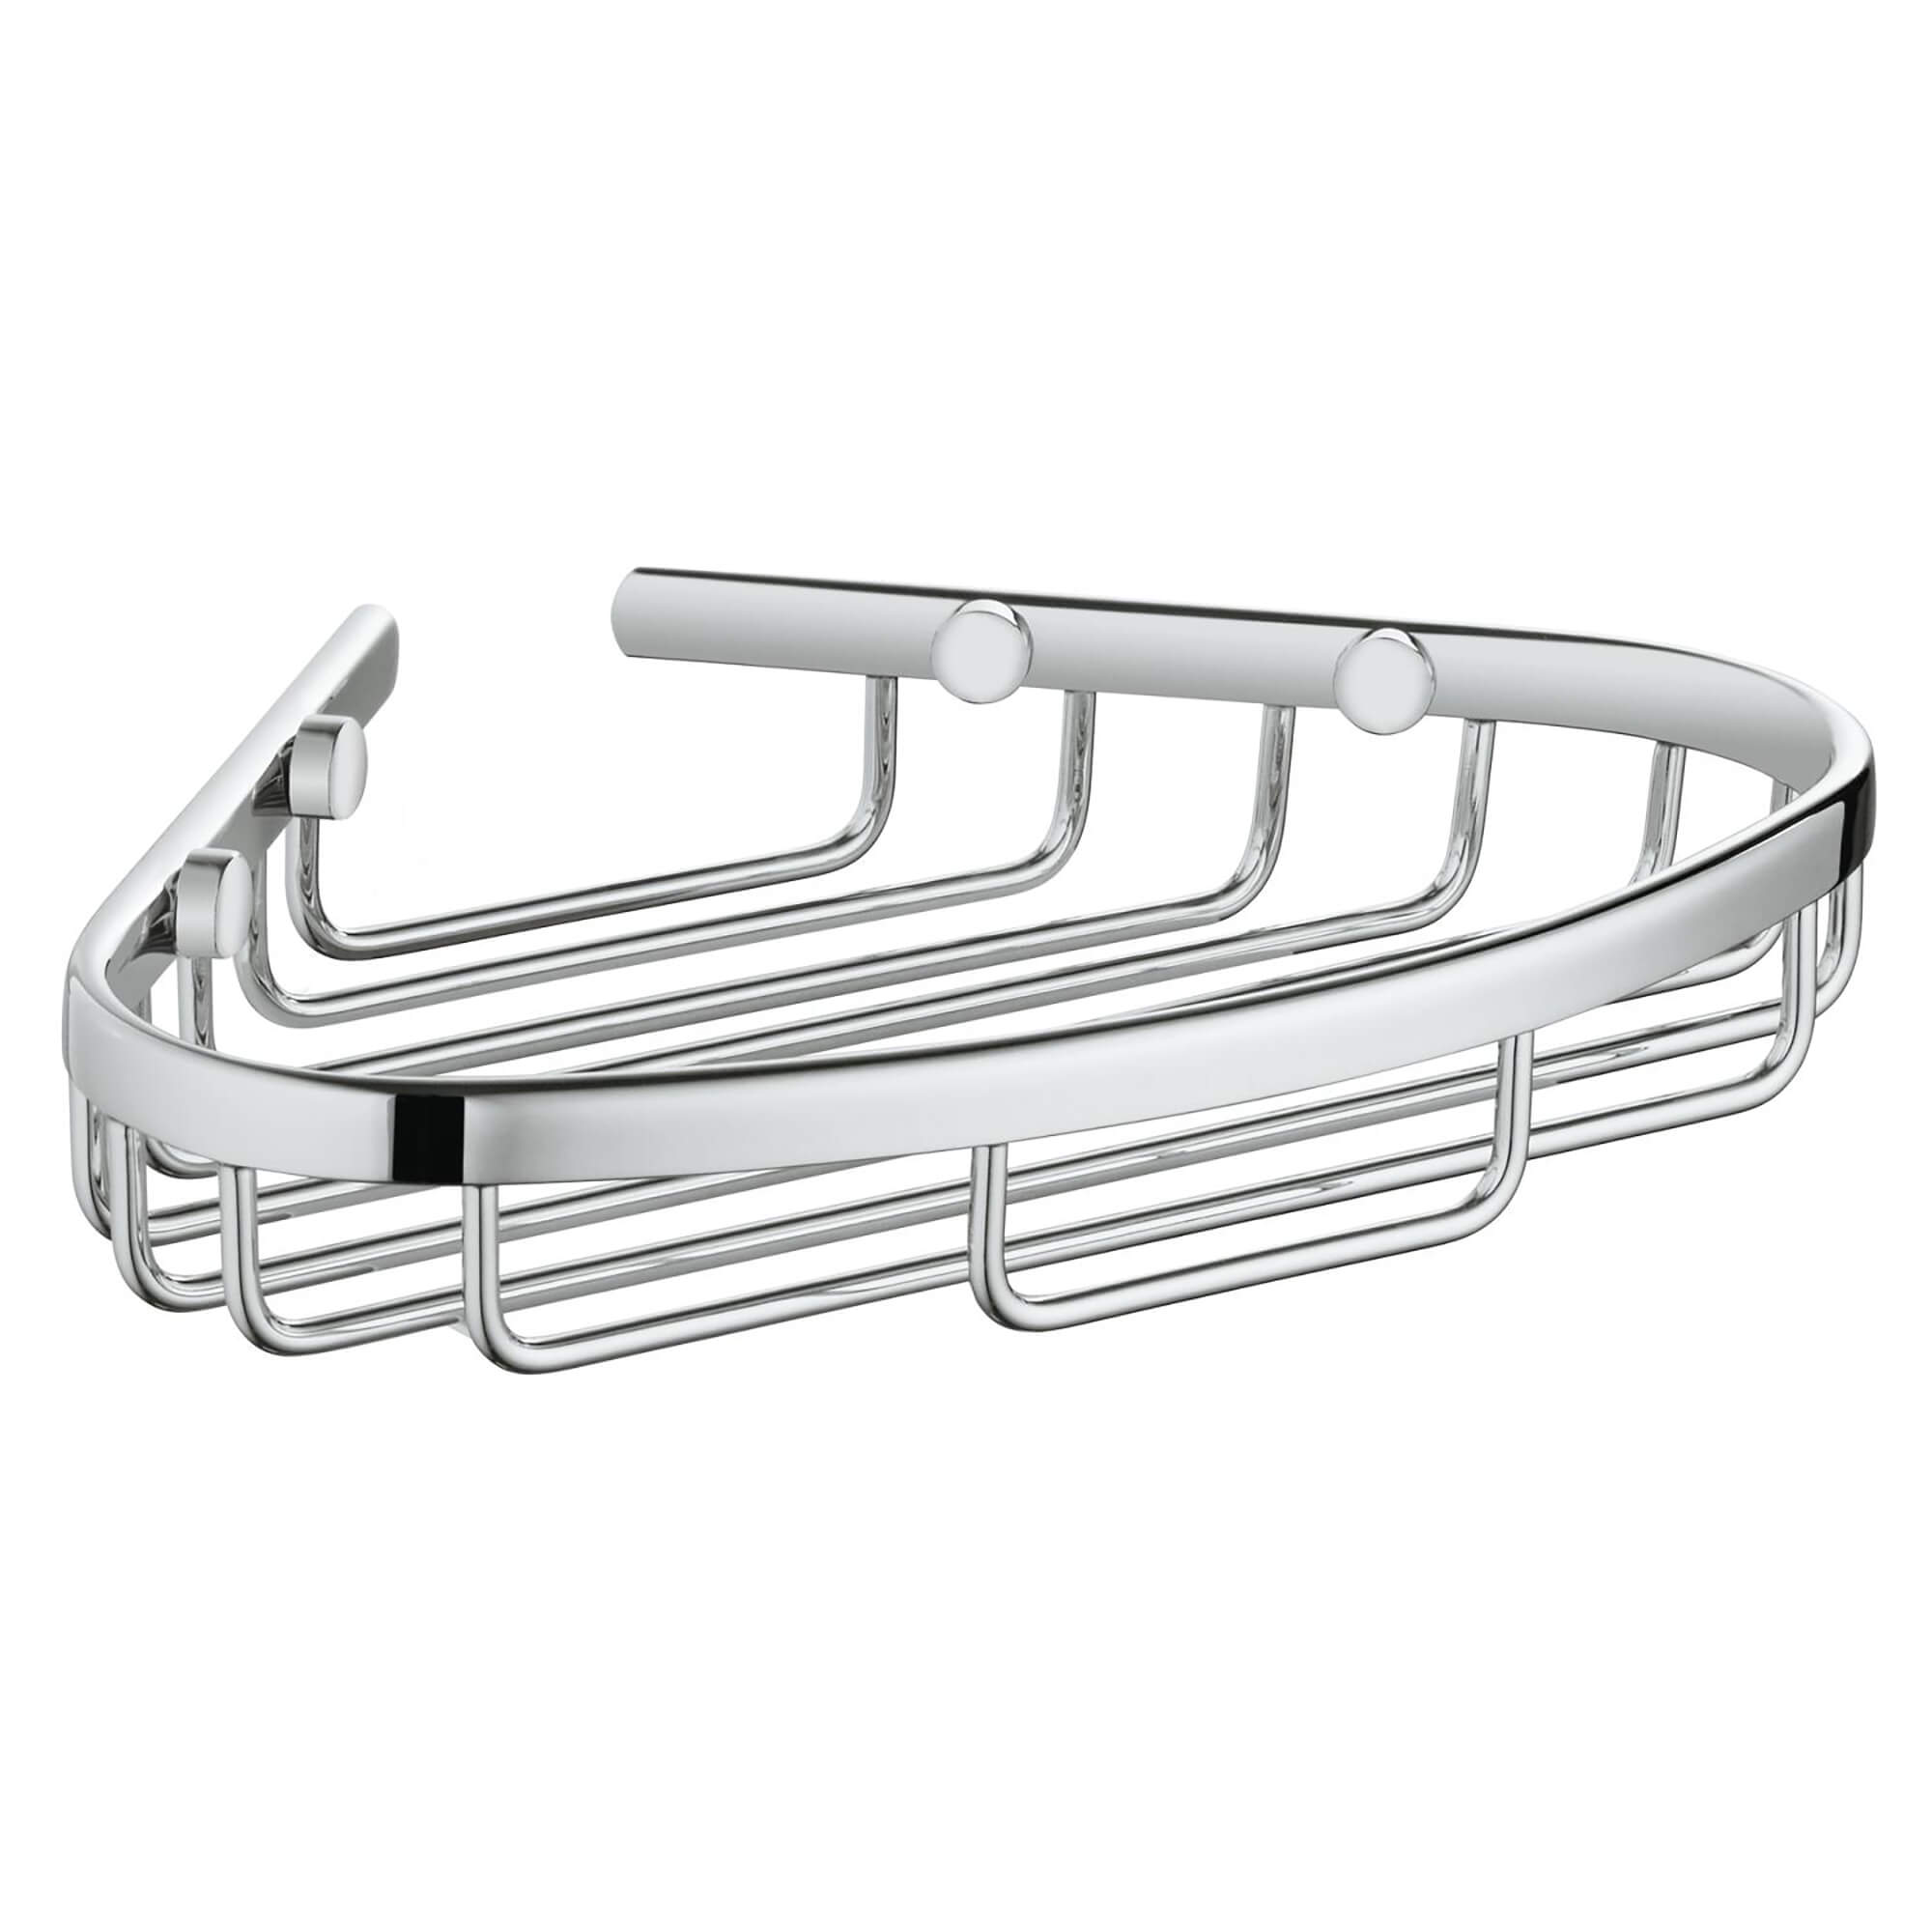 Filing Basket GROHE CHROME